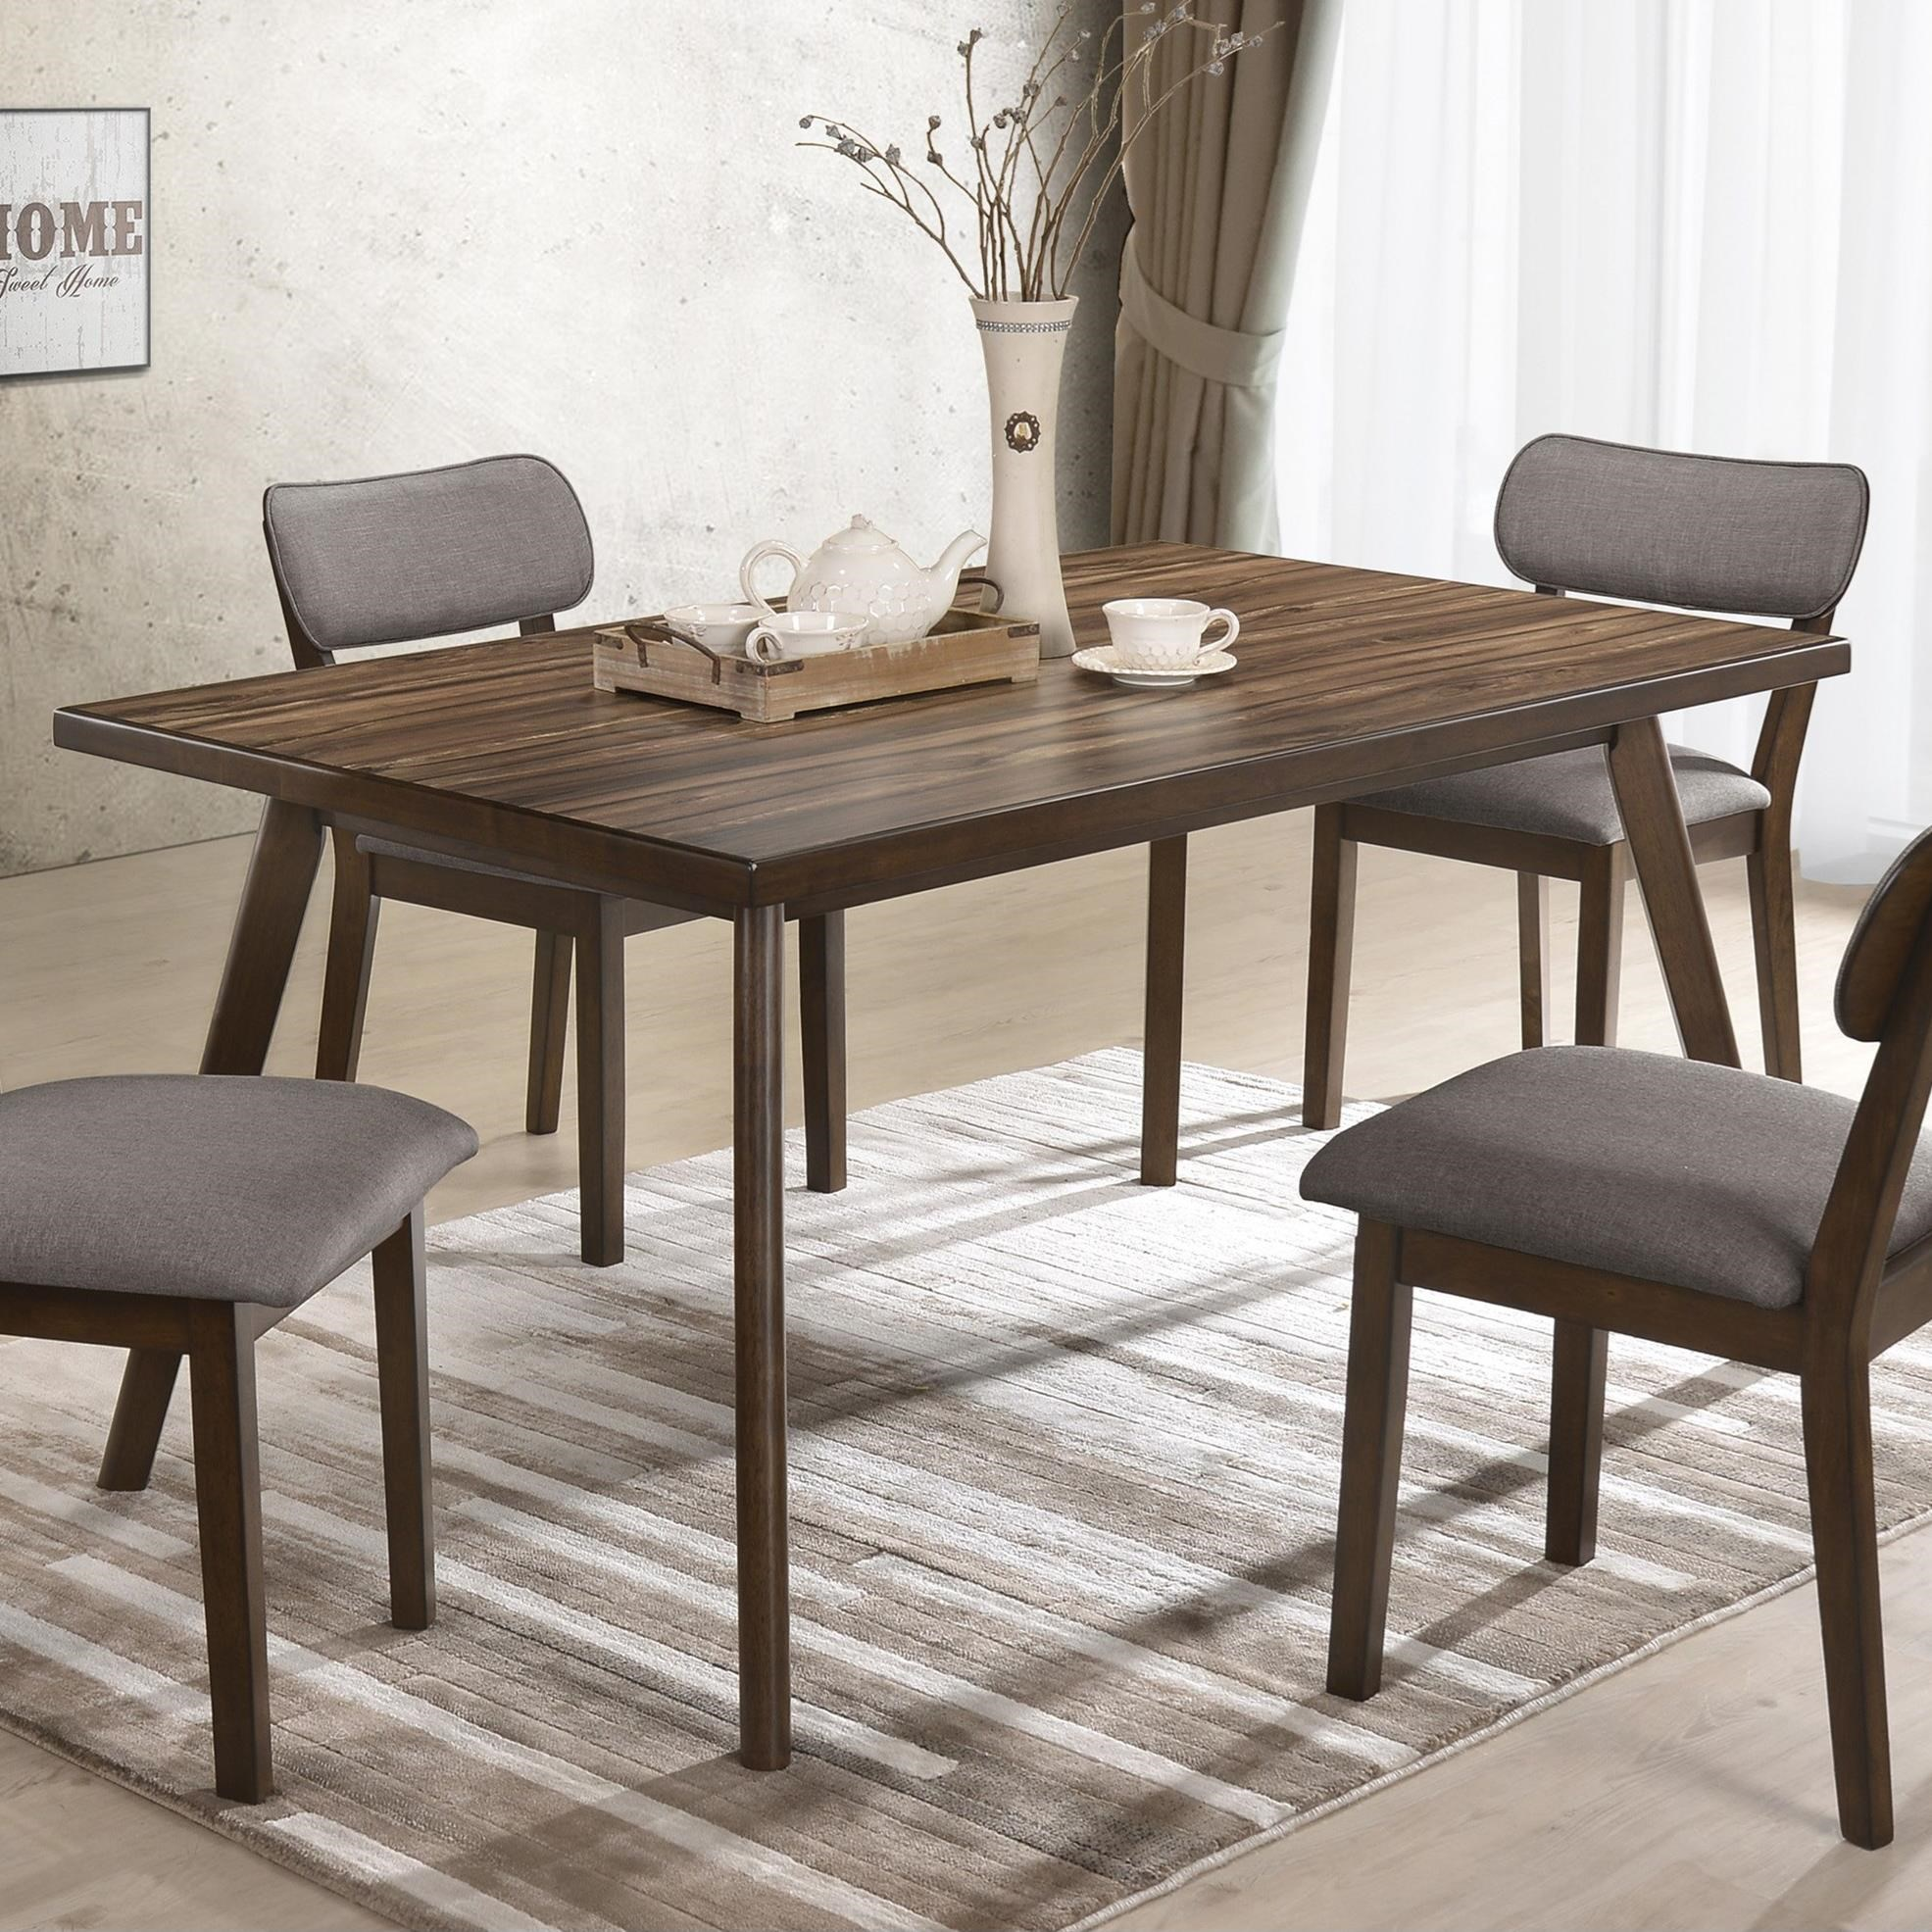 Gina Mid-Century Modern Dining Table with Angled Legs by Crown Mark at  Royal Furniture